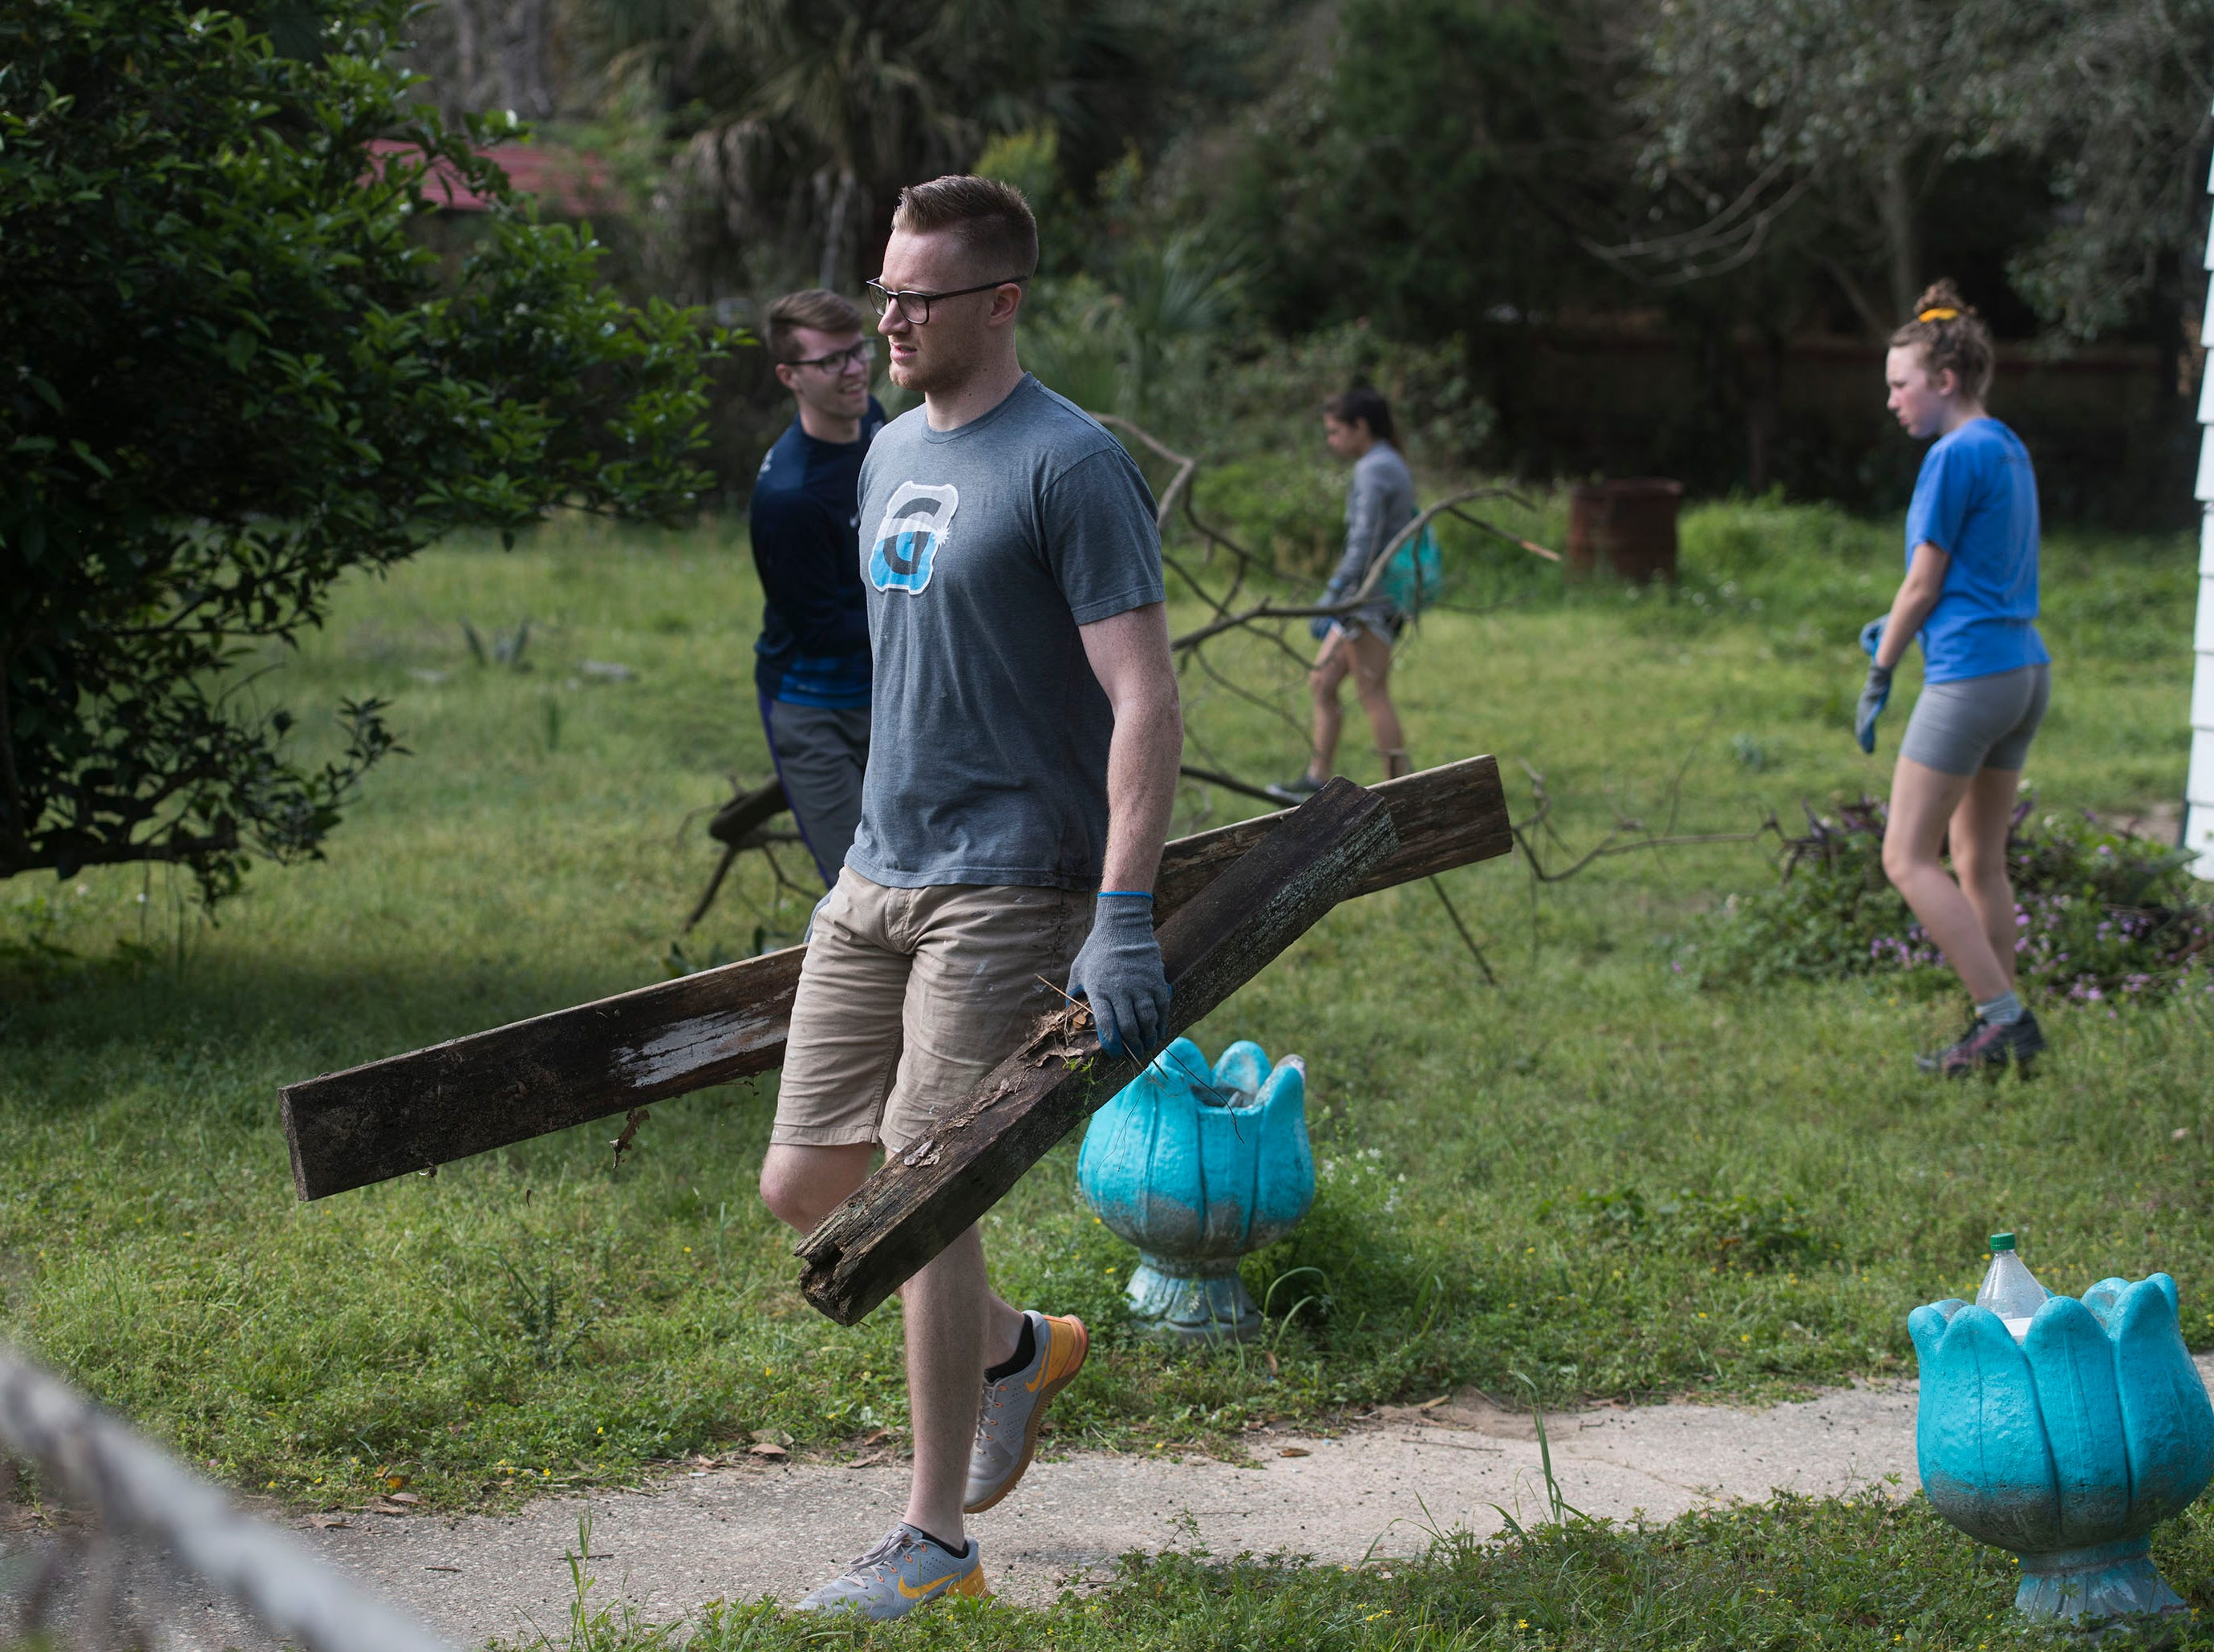 Bo Banner, with the organization Call to Greatness, volunteers his time cleaning up the Brownsville area on Tuesday, March 12, 2019. The local Habitat for Humanity, Keep Pensacola Beautiful the City of Pensacola and Escambia County joined forces to help the Brownsville neighborhood for the inaugural Rock the Block event. The local Habitat for Humanity, Keep Pensacola Beautiful the City of Pensacola and Escambia County joined forces to help revitalize the Brownsville neighborhood during the inaugural Rock the Block event.